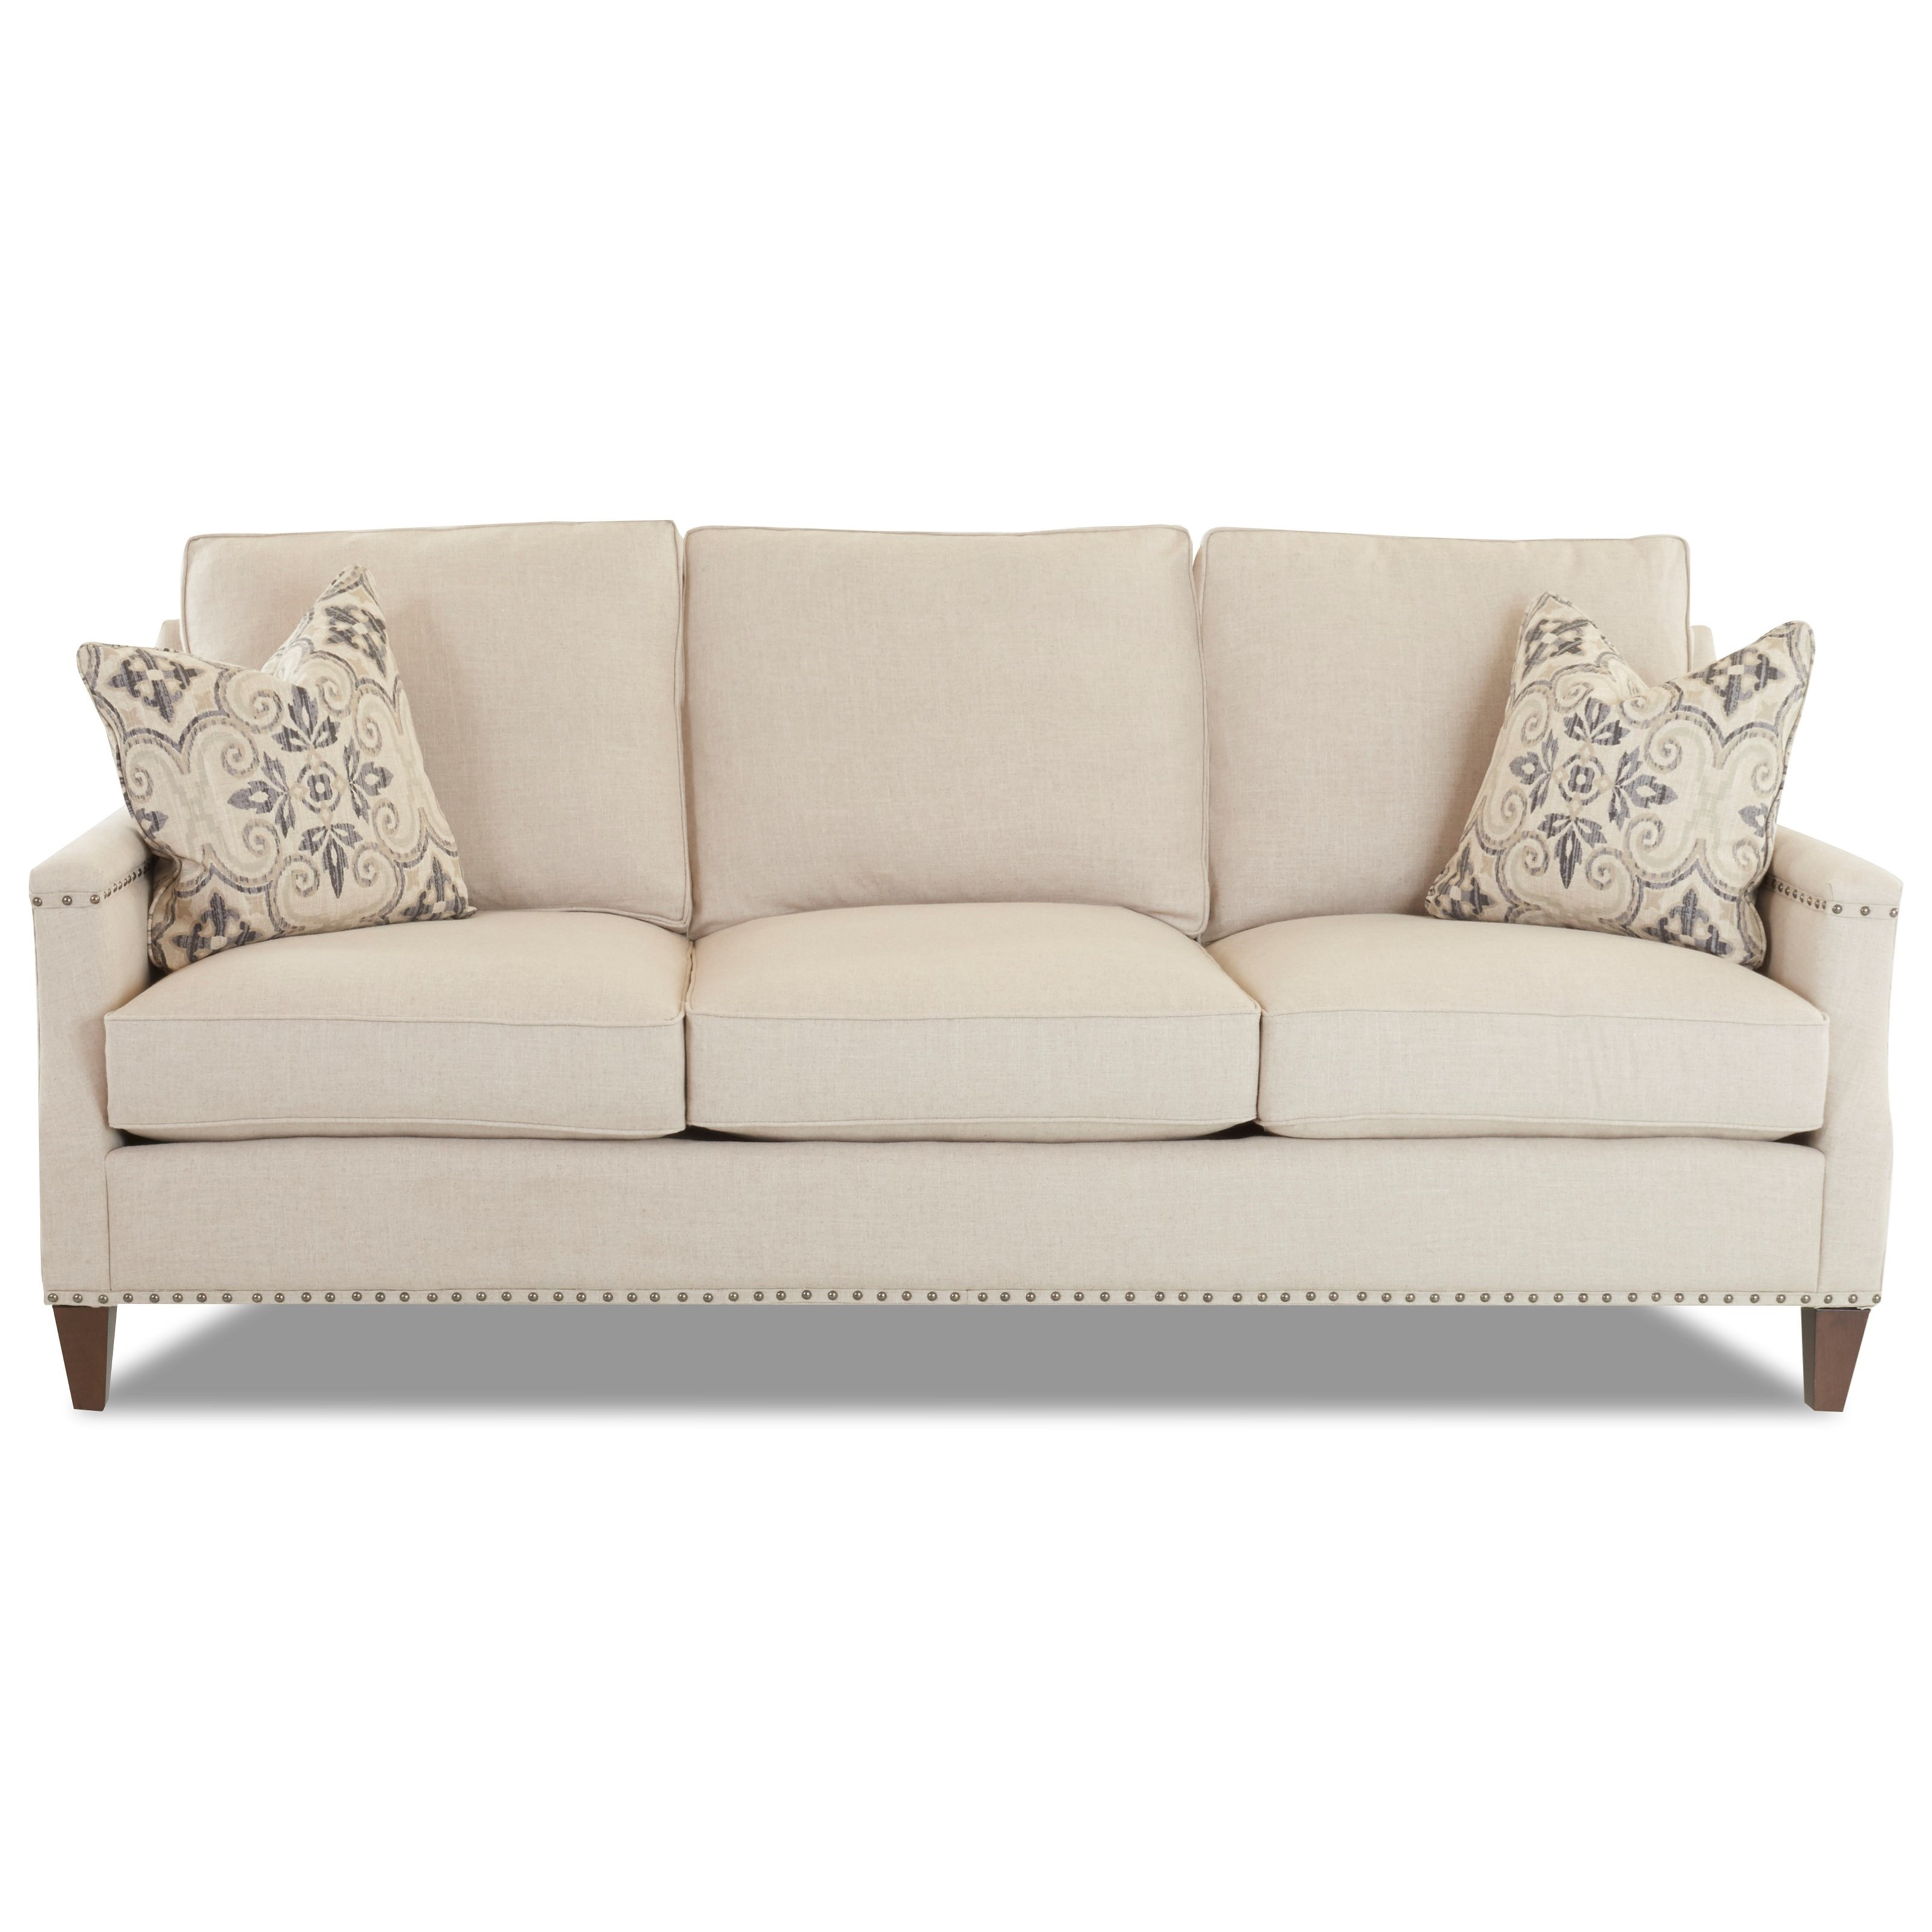 Klaussner bond d18510 s transitional sofa with nailhead for Sofa with studs